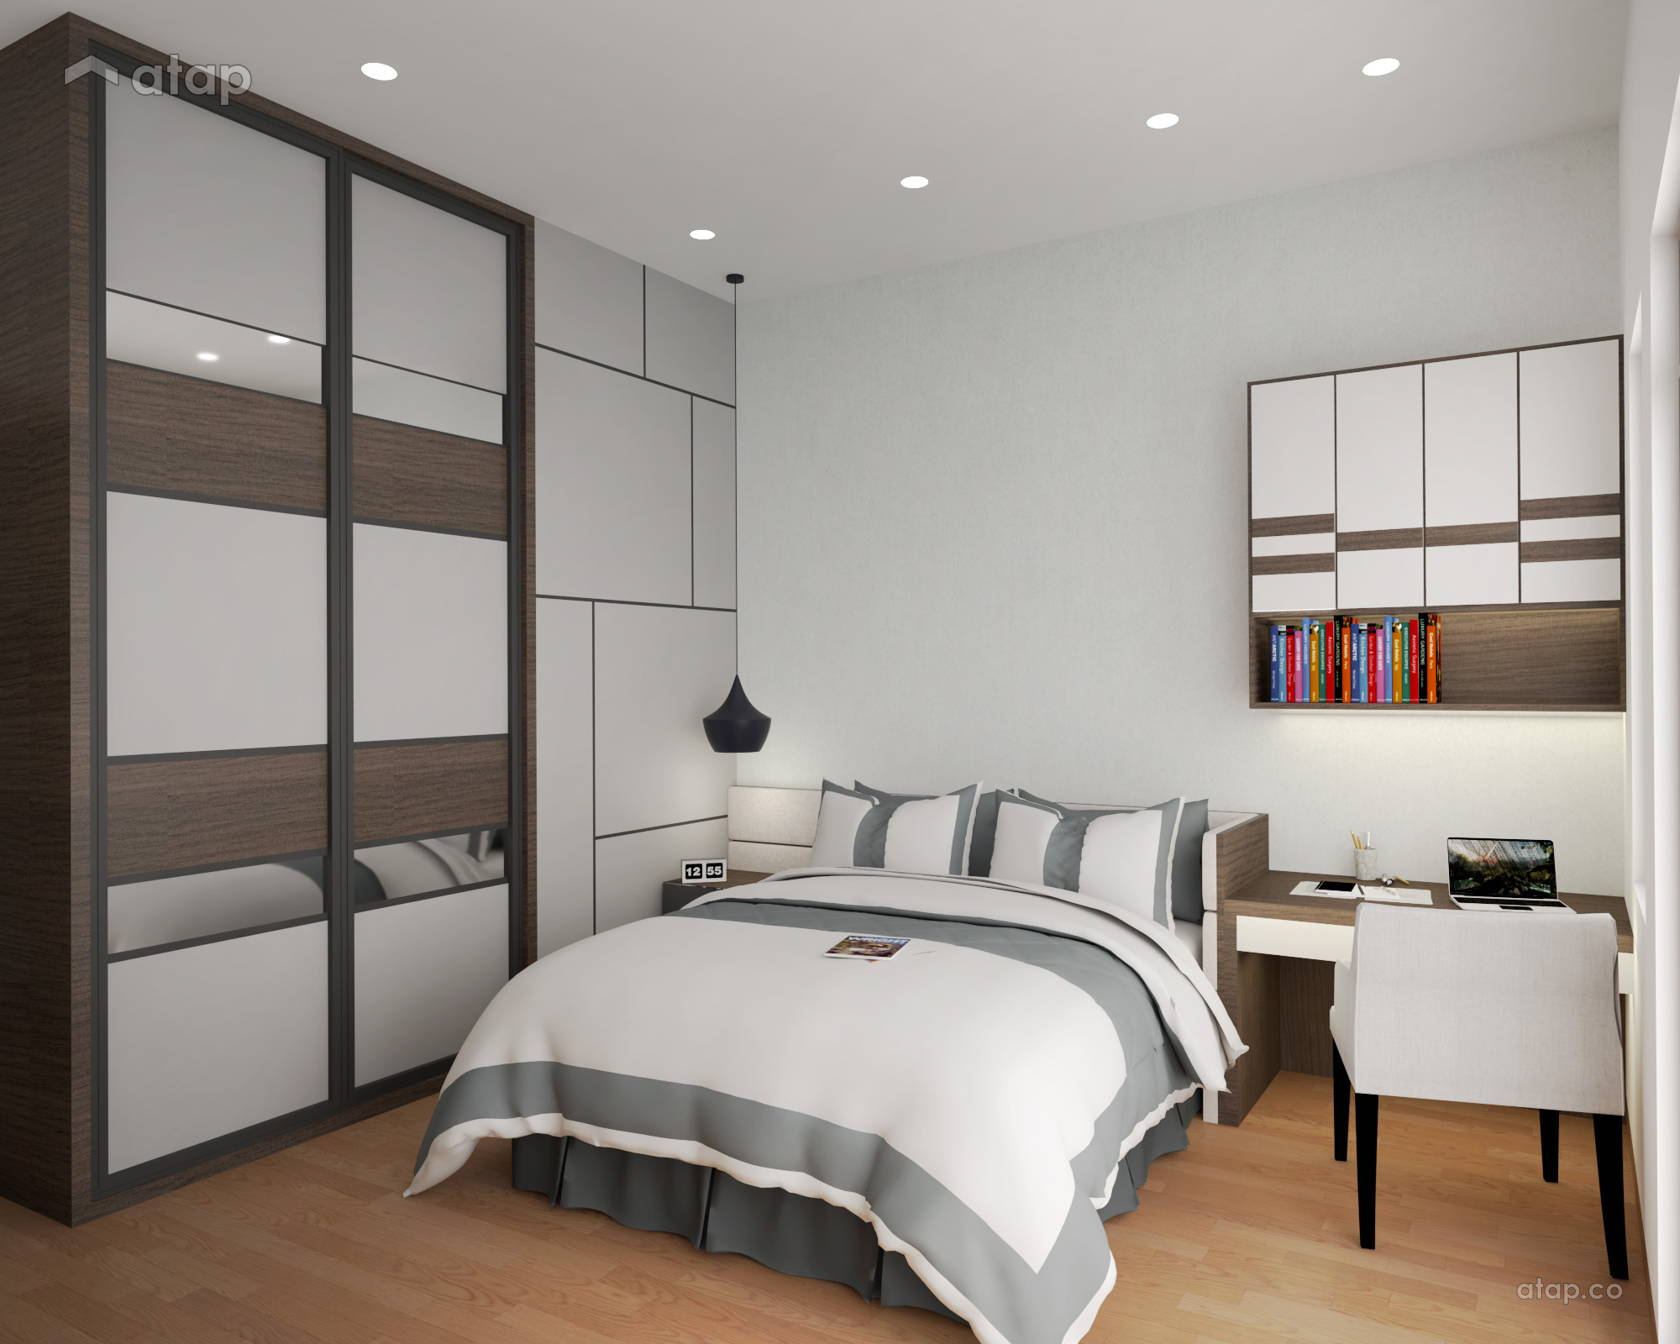 master bedroom interior design renovation ideas, photos and price